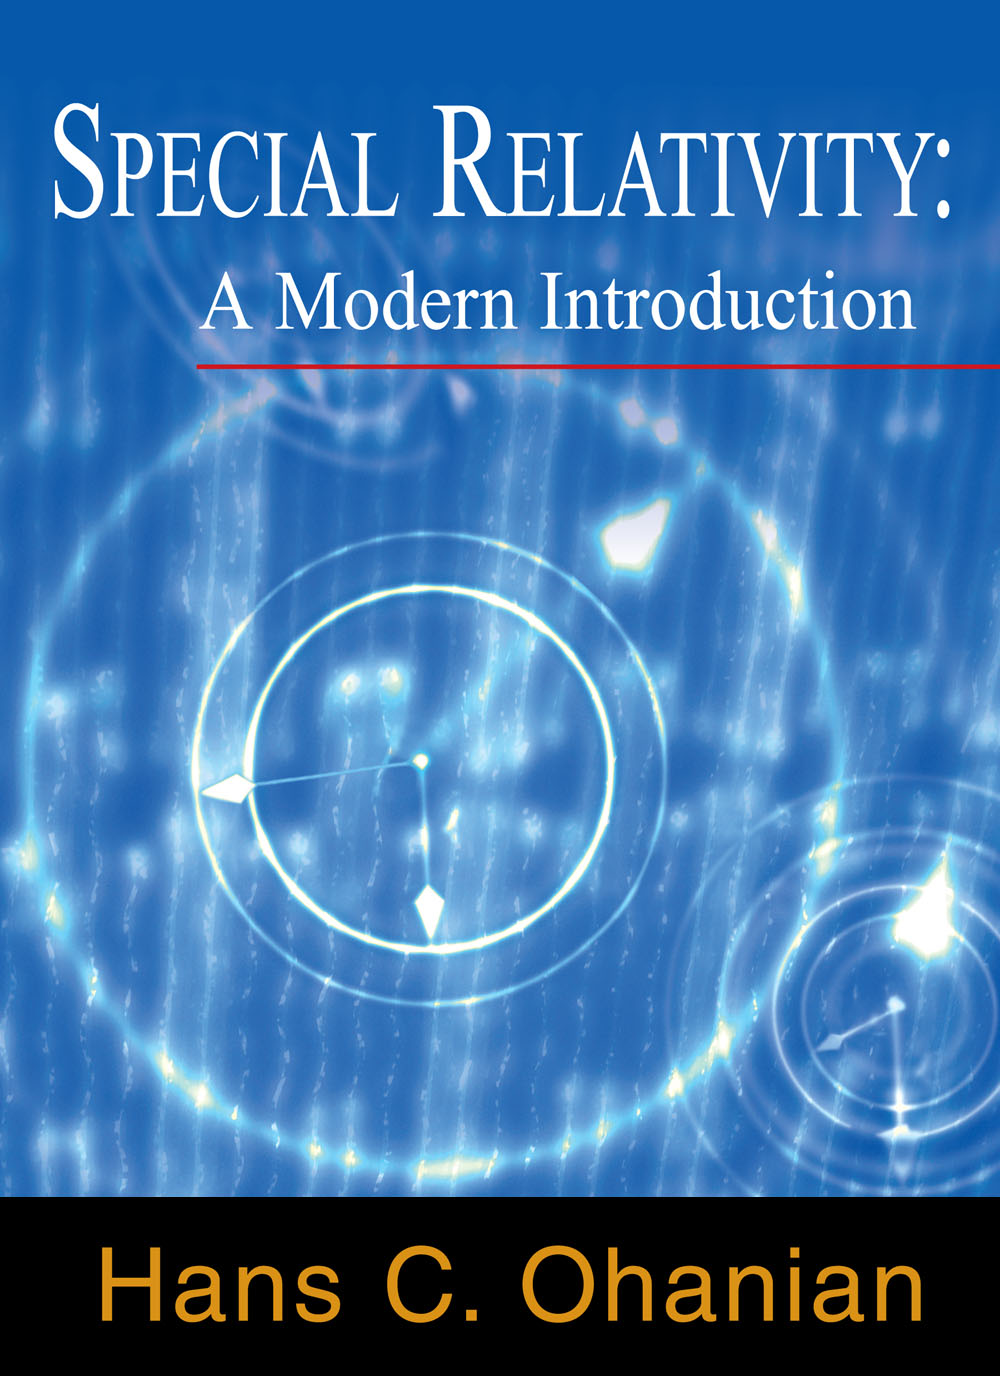 Special Relativity: A Modern Introduction by Hans Ohanian